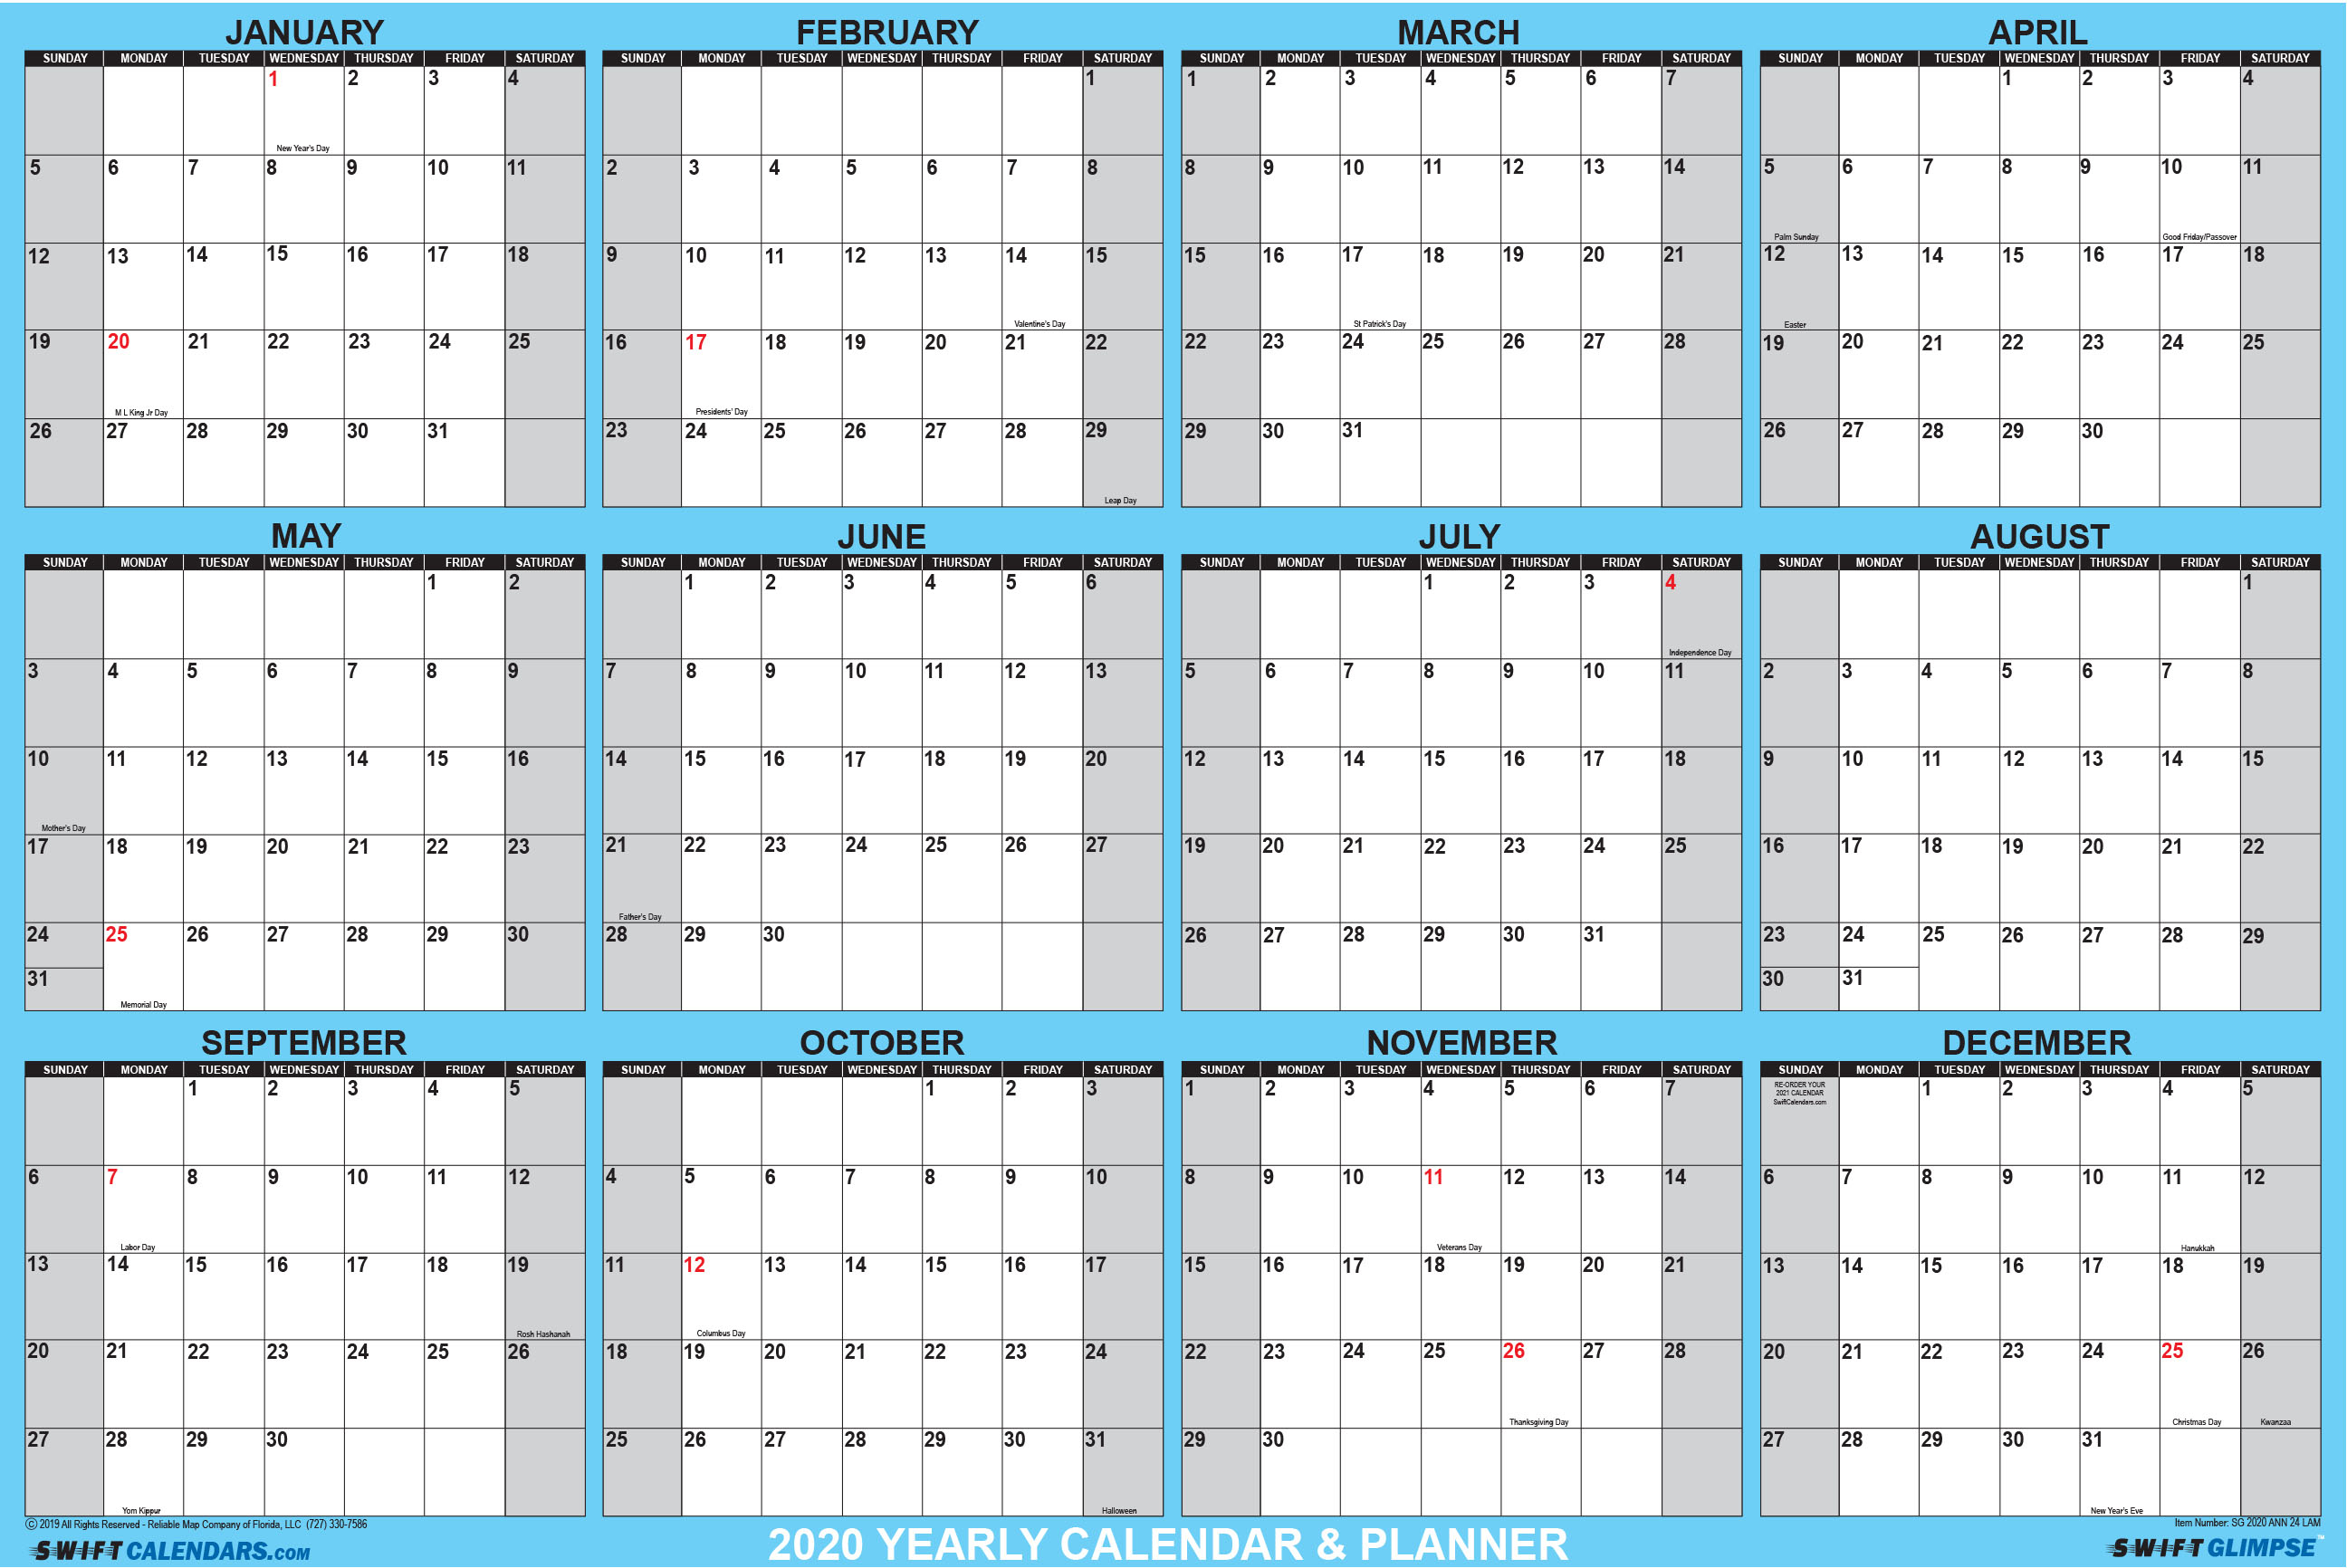 Swiftglimpse 2020 Dry Erase Wall Calendar Planner intended for Year Calendar 2020 With Space To Write